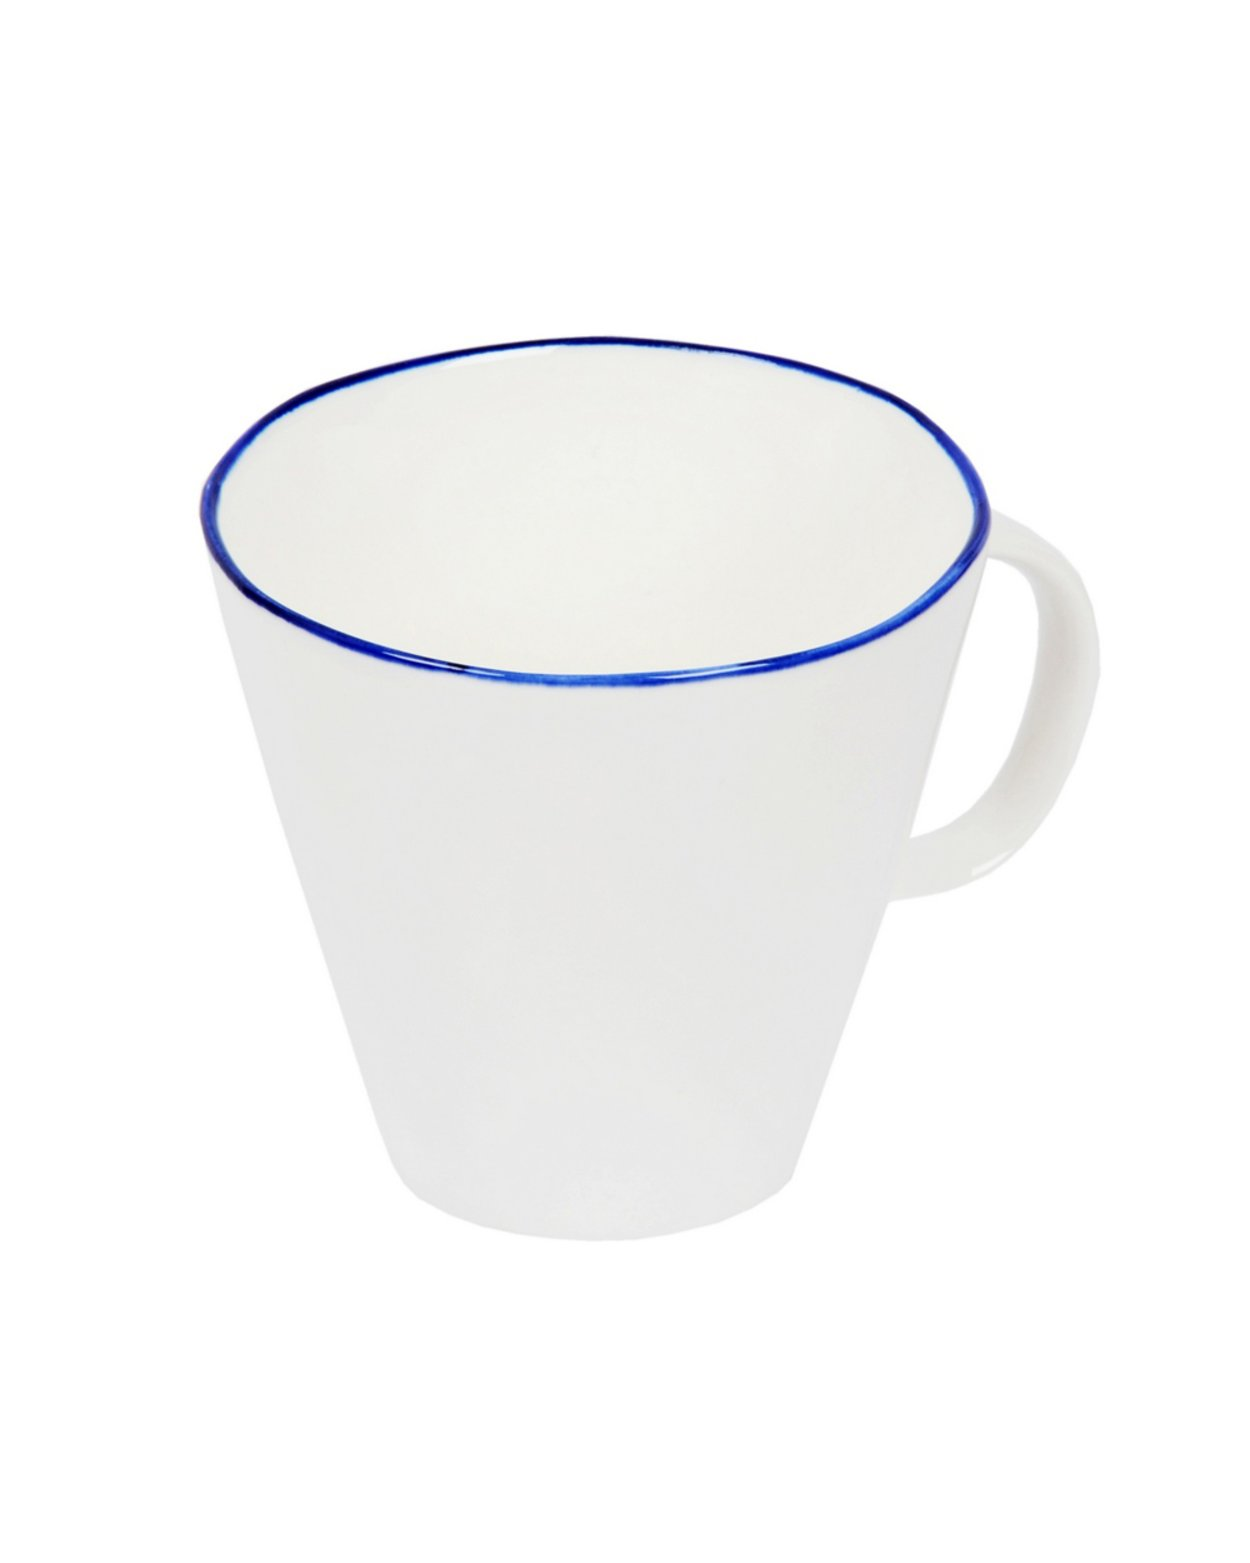 Cup - Classic